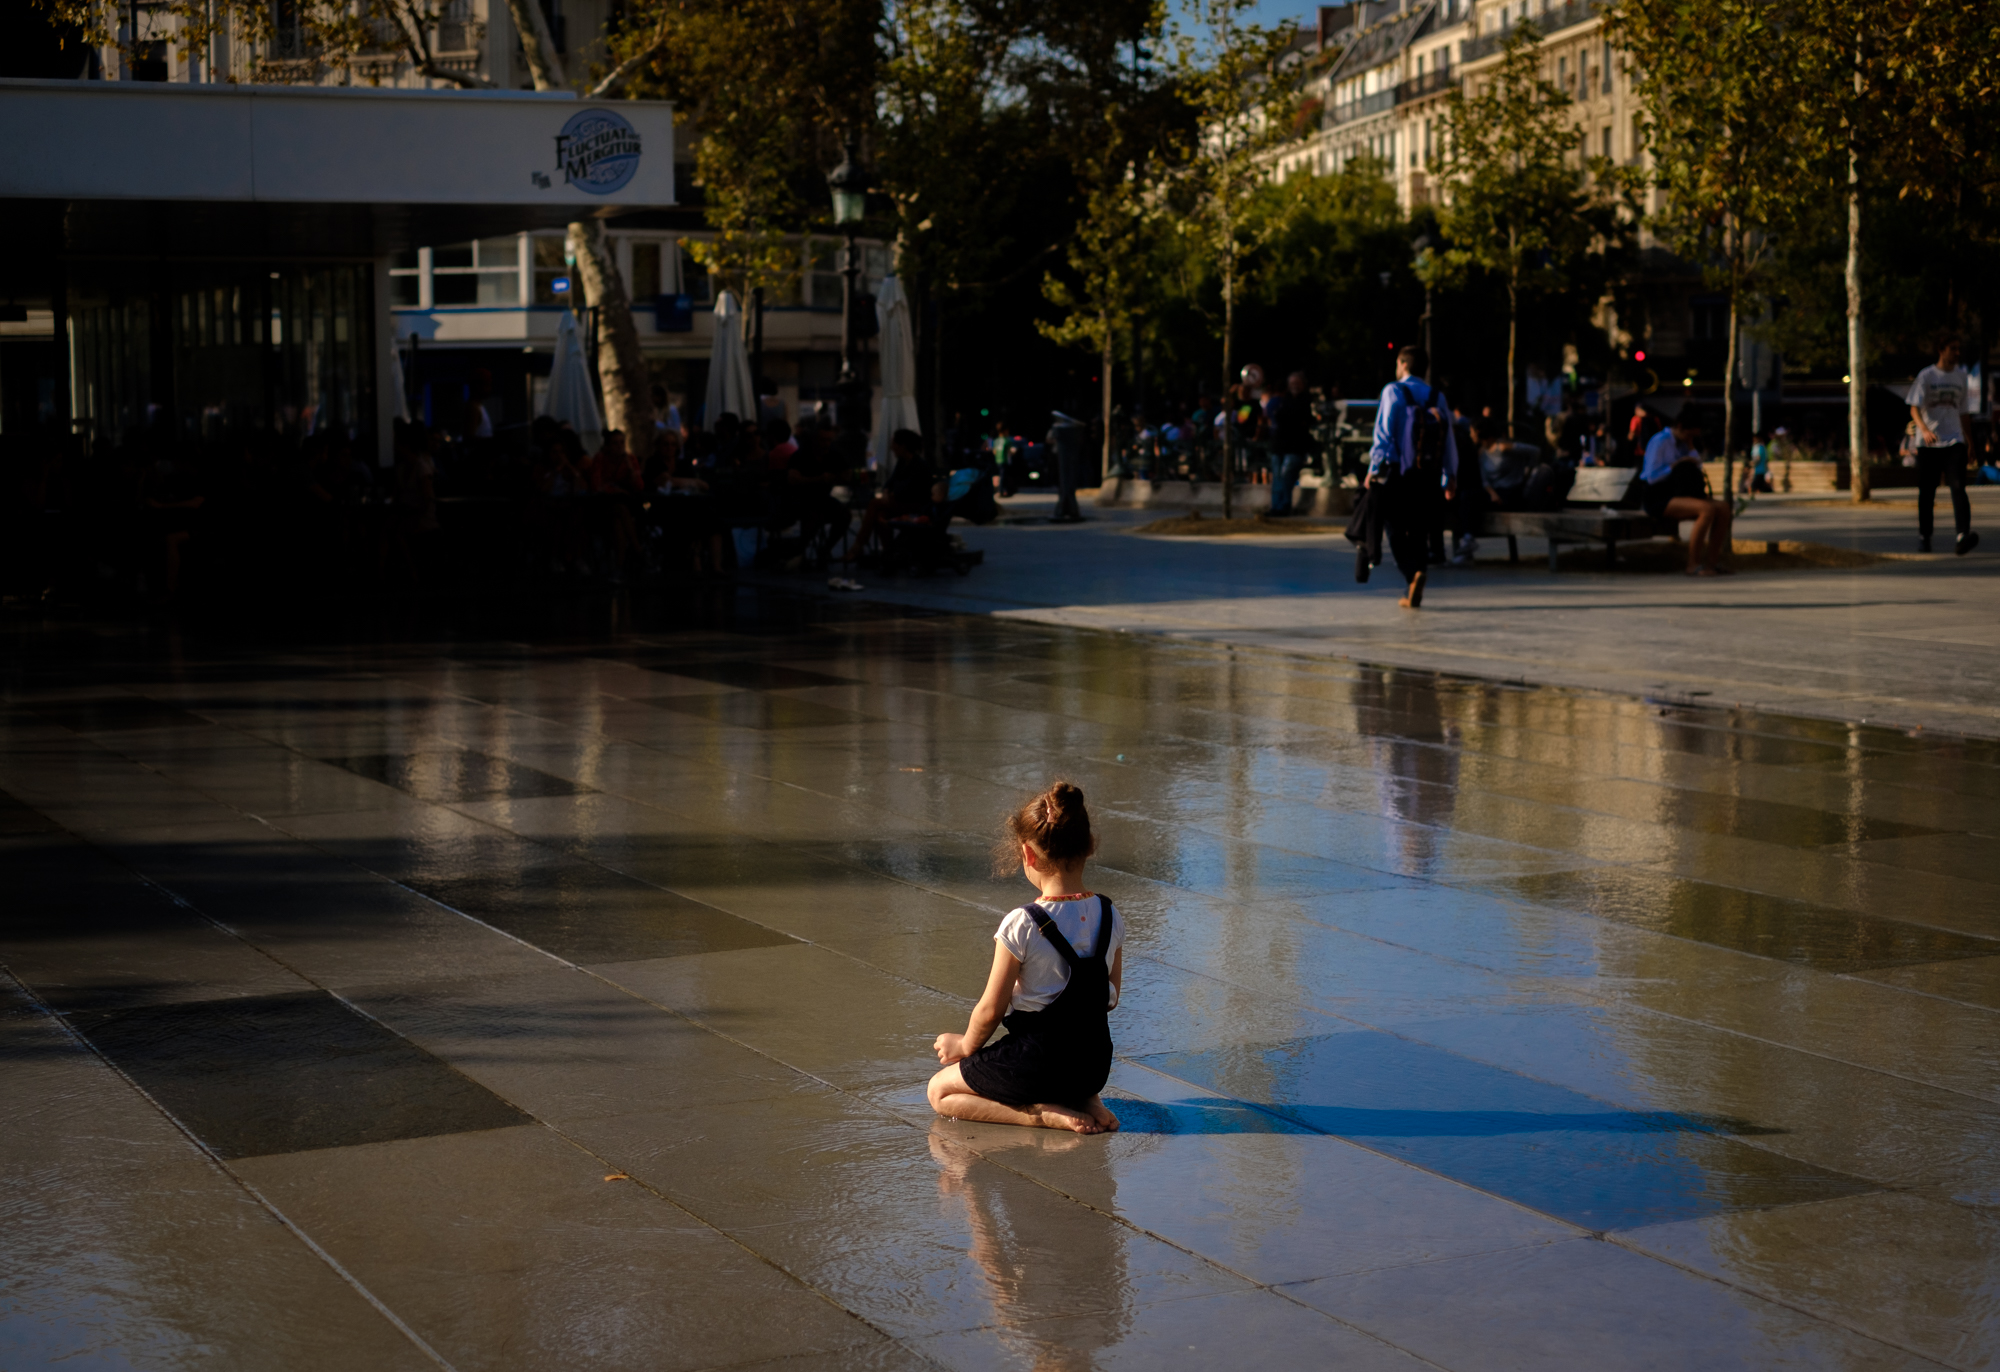 Cooling off in Place de la République